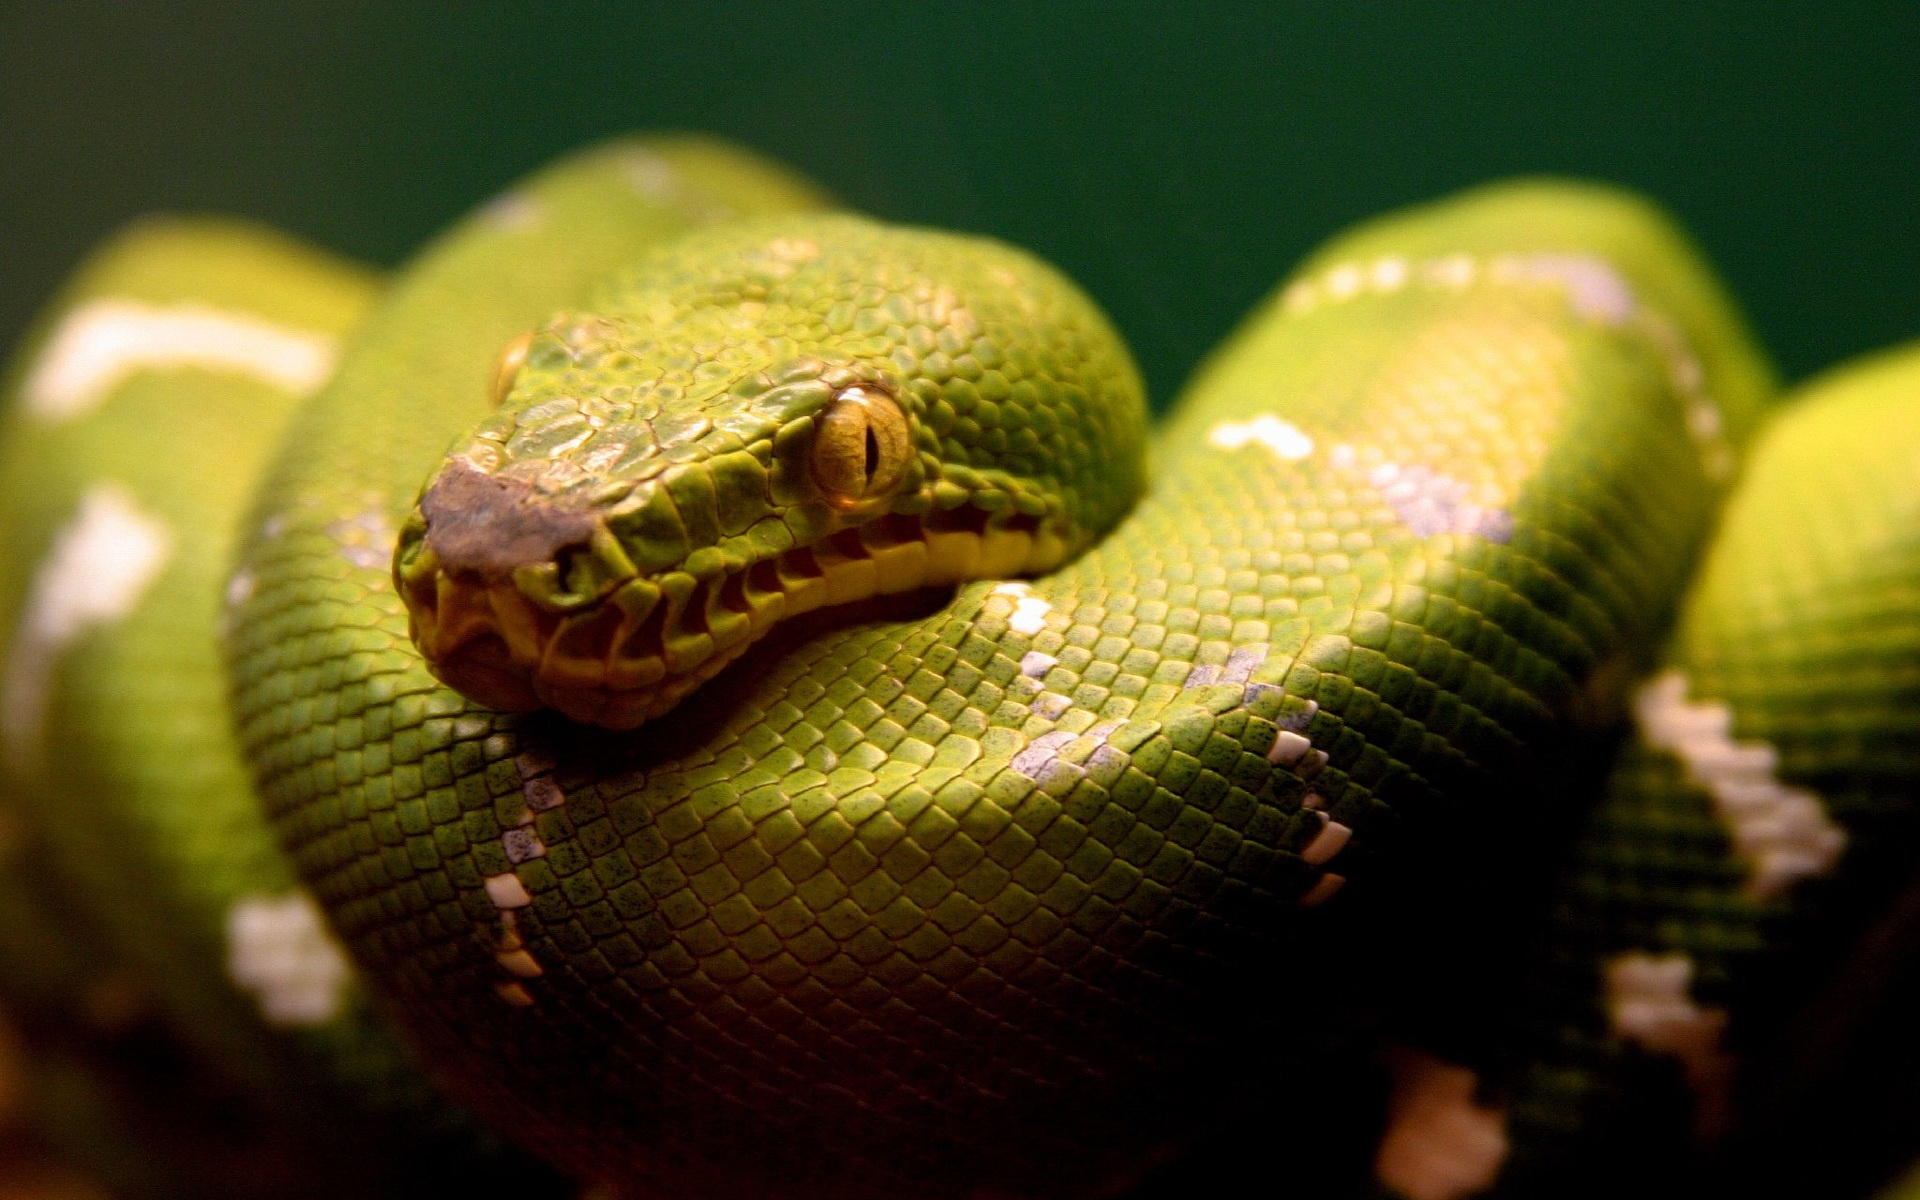 Green Snake Wallpapers HD Wallpapers 1920x1200